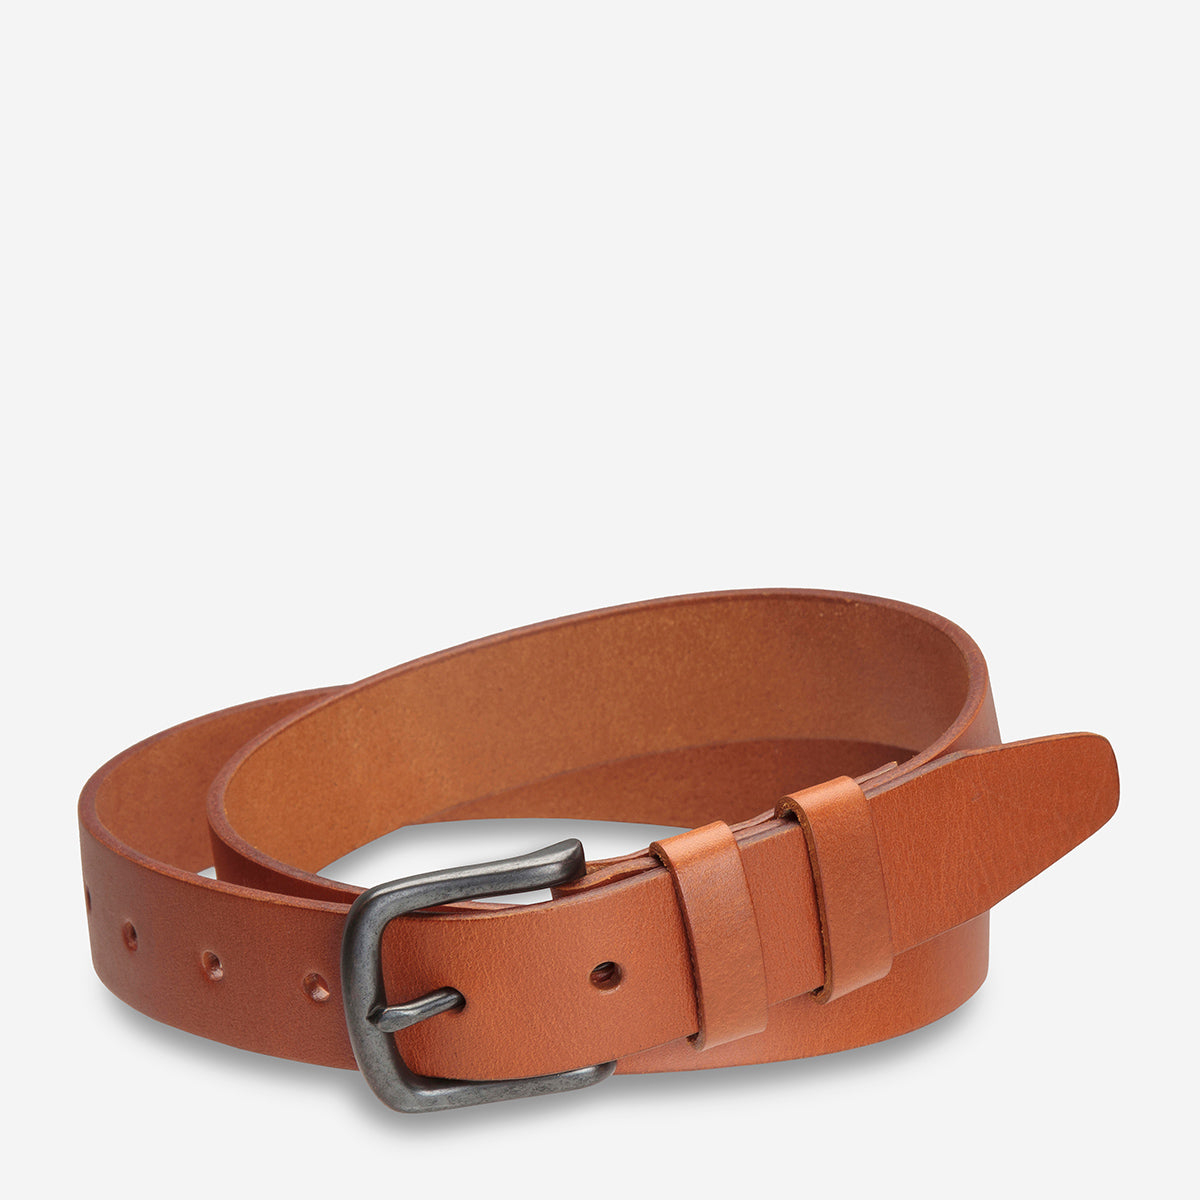 Status Anxiety Citizen Men's Leather Belt - Tan